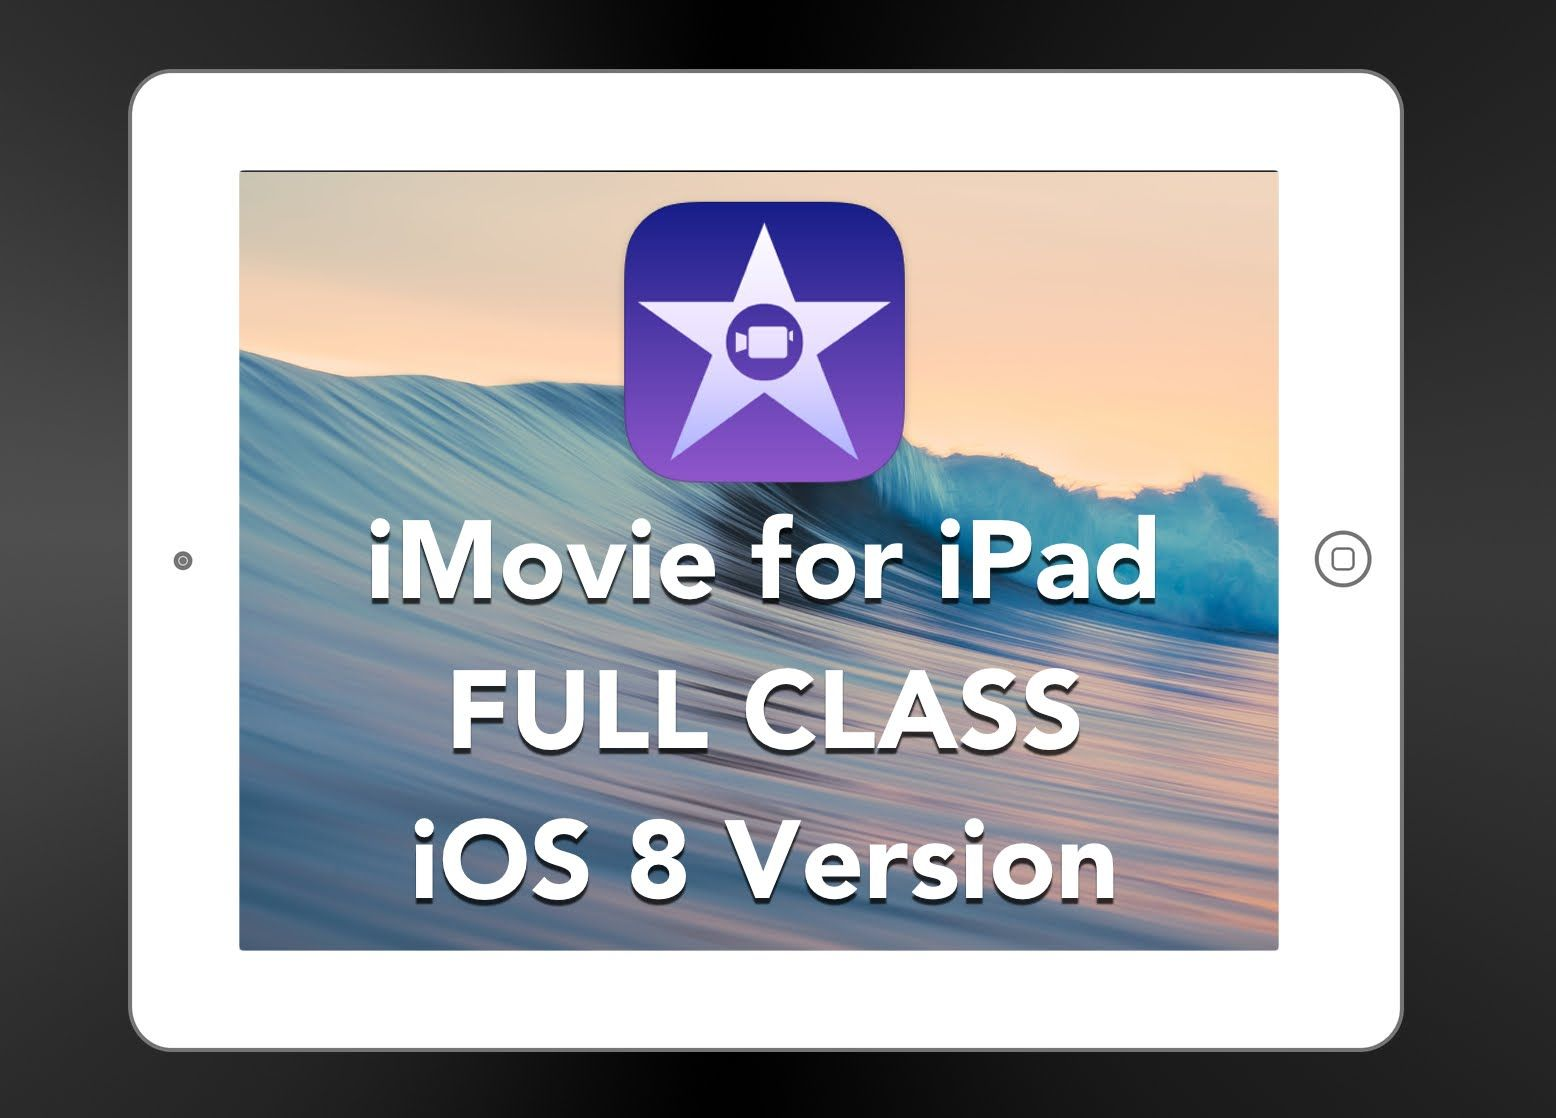 imovie is a simple, yet amazingly powerful app that will allow you